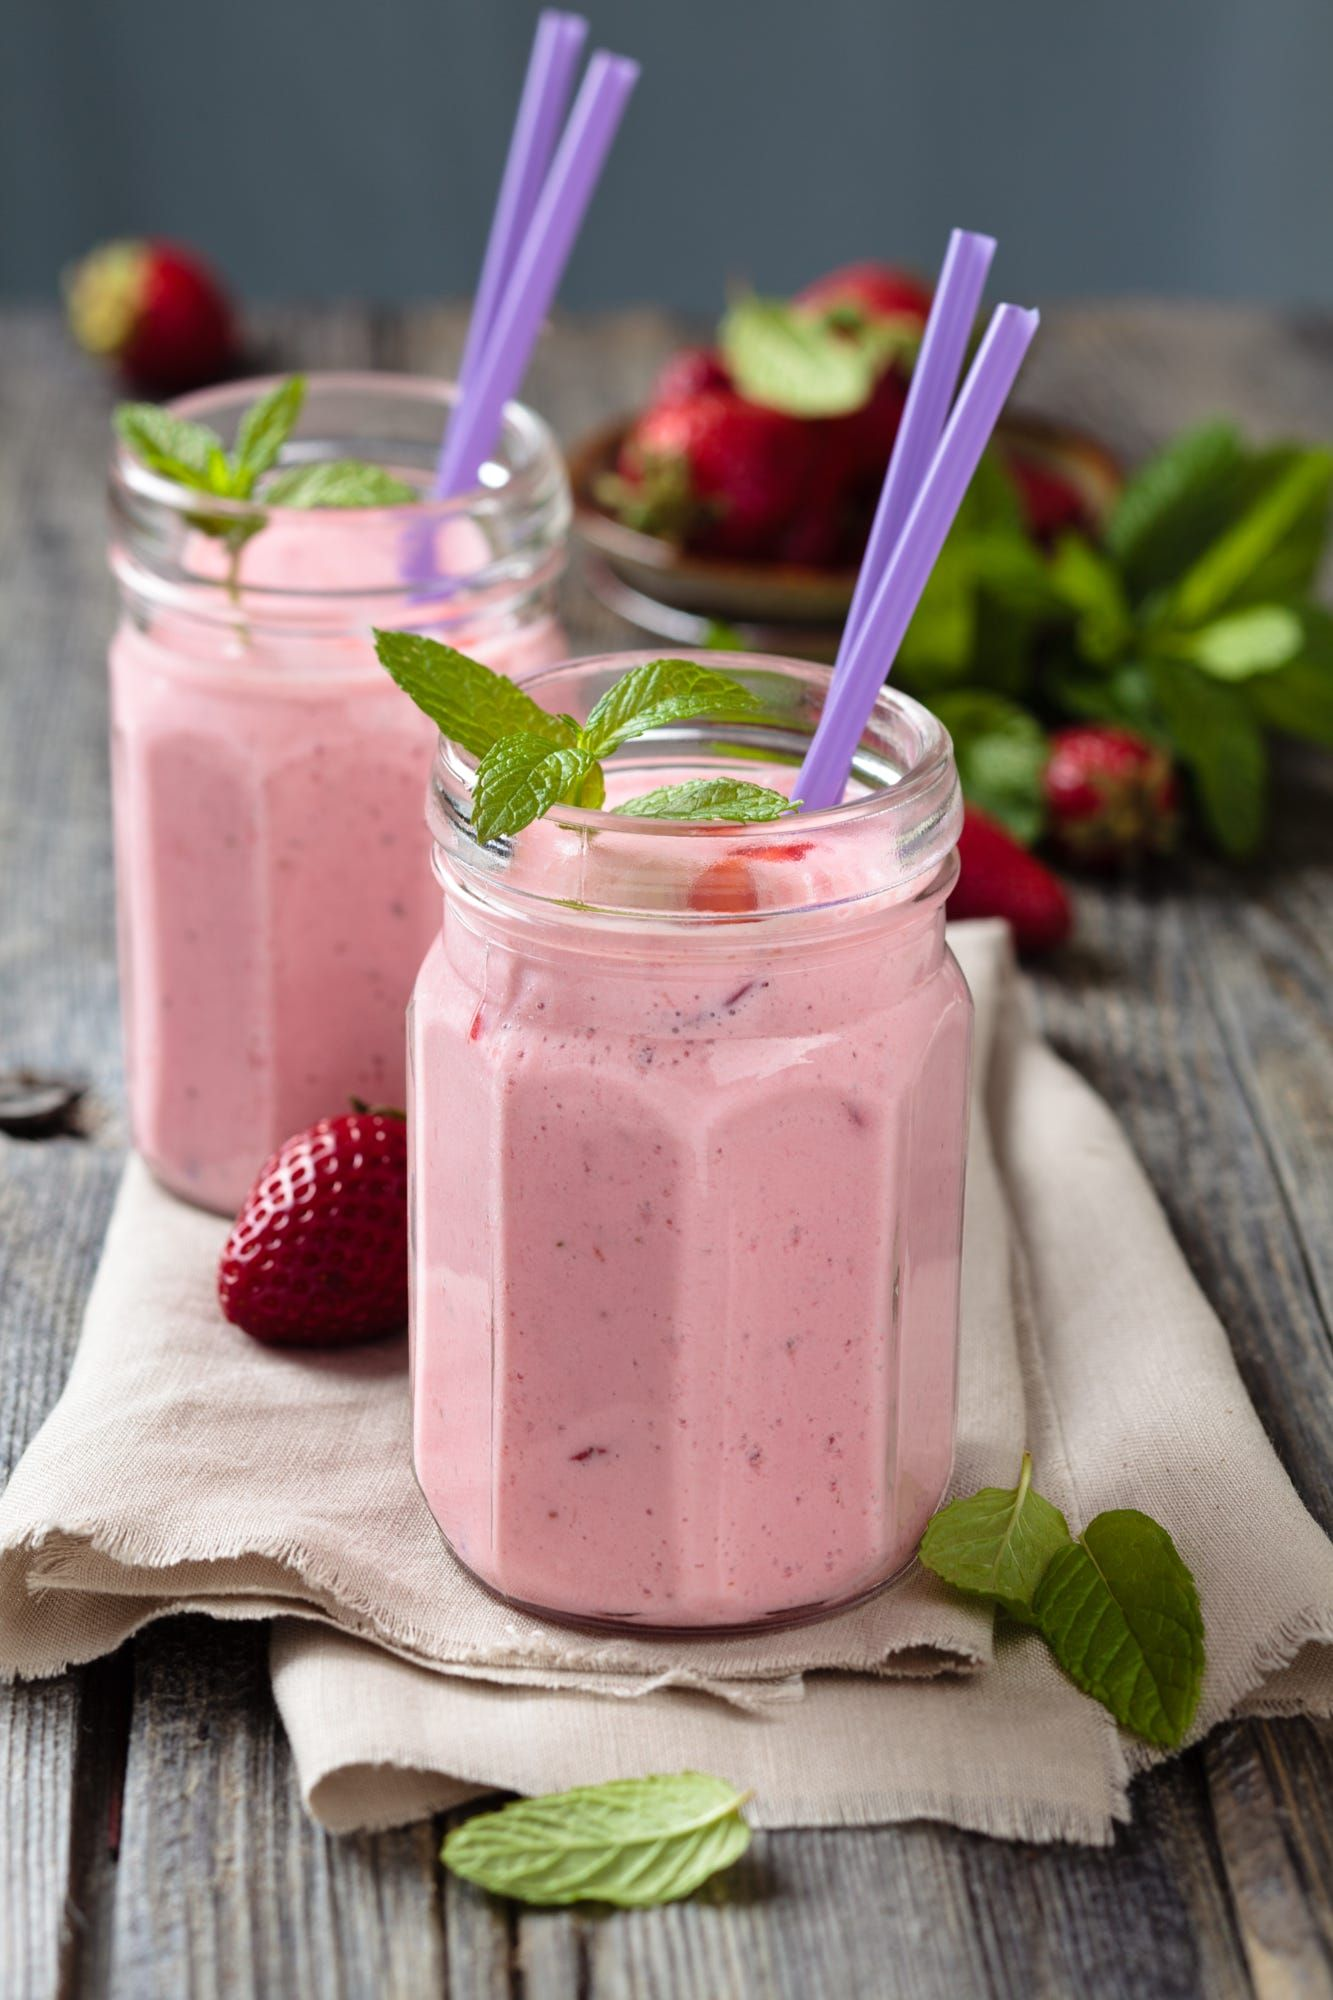 Fruit smoothie with mint leaves on wooden rustik table.